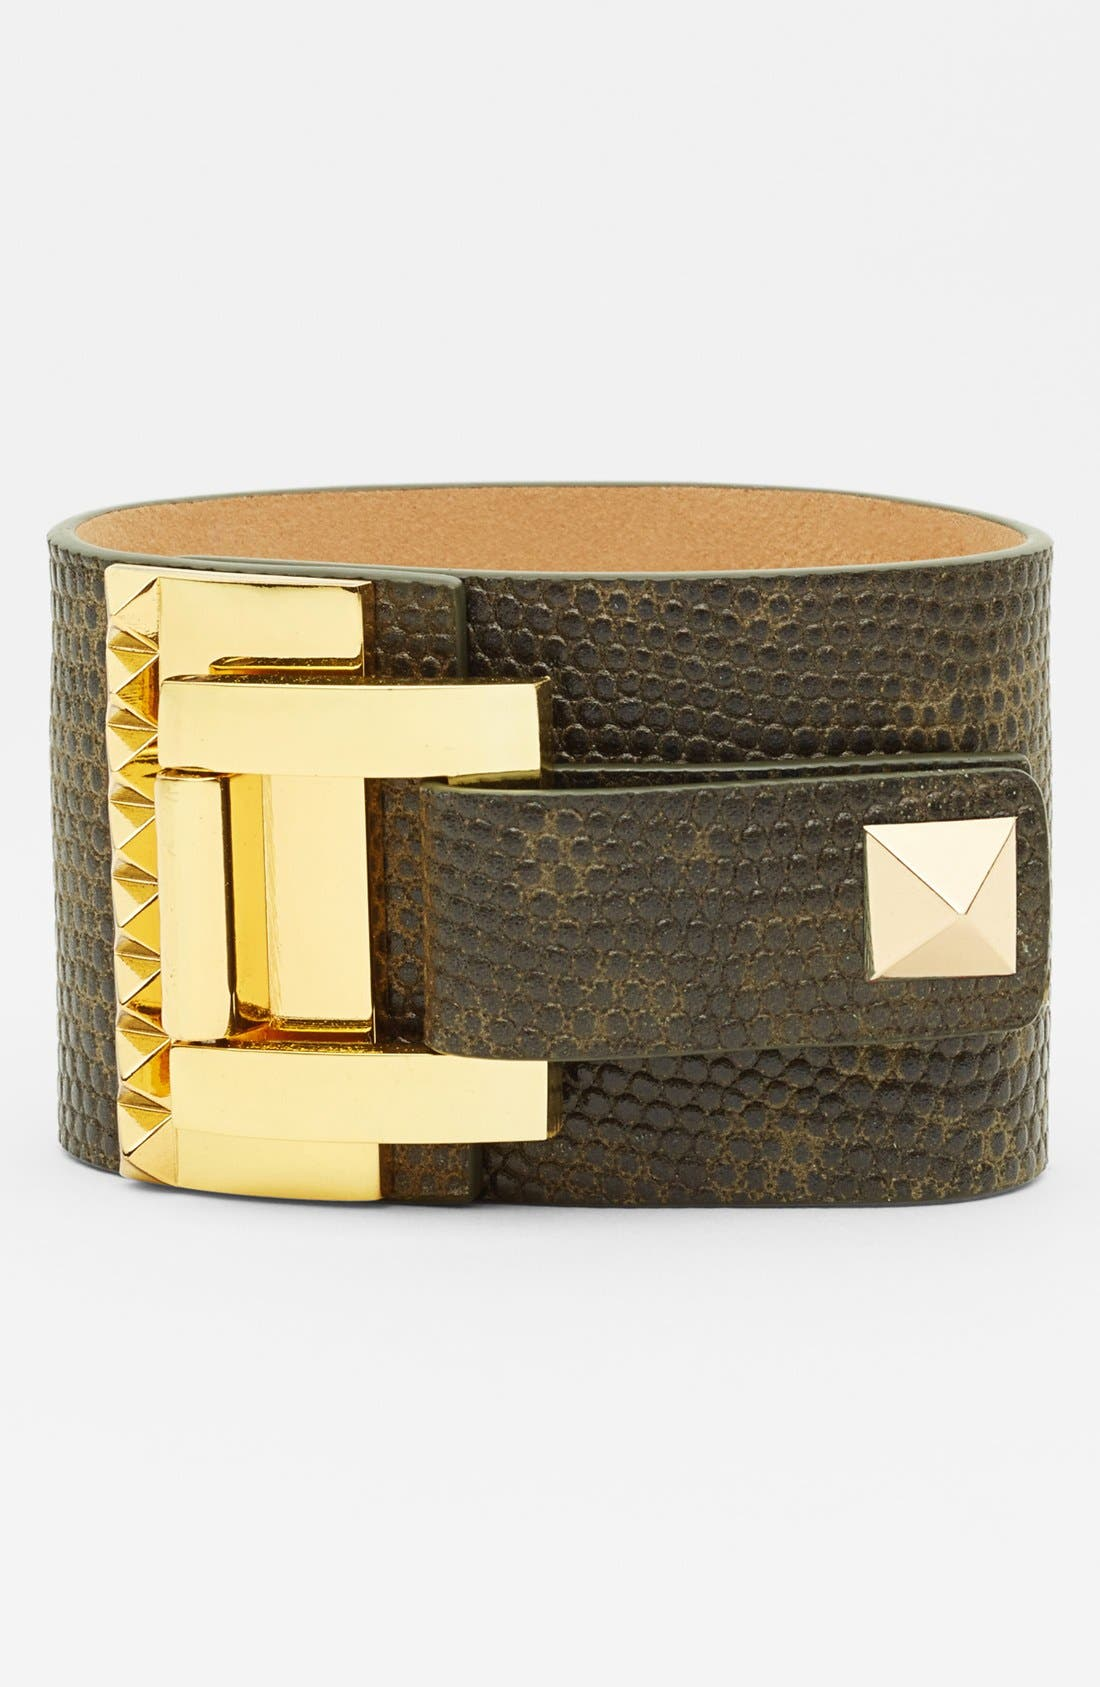 Main Image - Vince Camuto 'Tour of Duty' Studded Buckle Wrap Bracelet